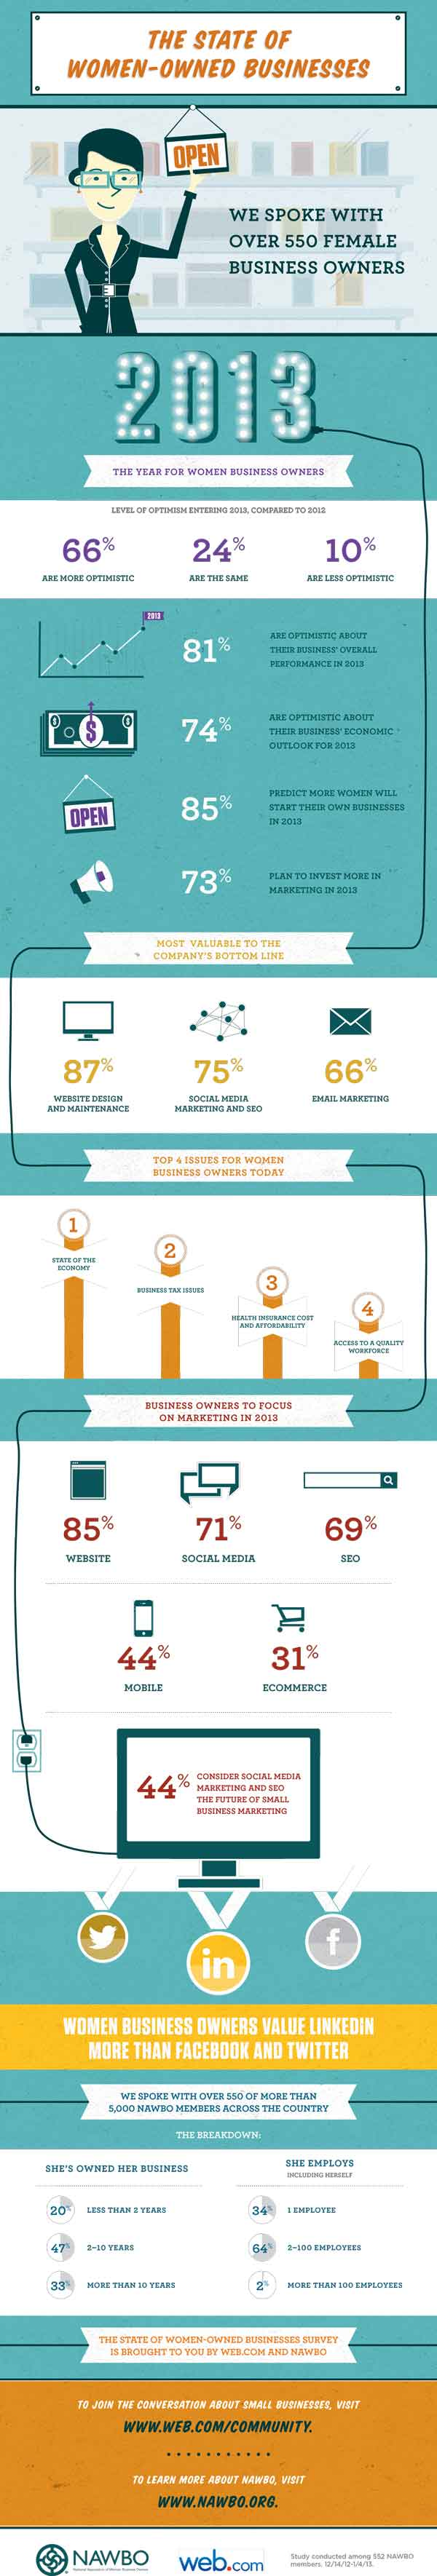 2013--State-of-Women-Owned-Businesses-Survey-Infographic